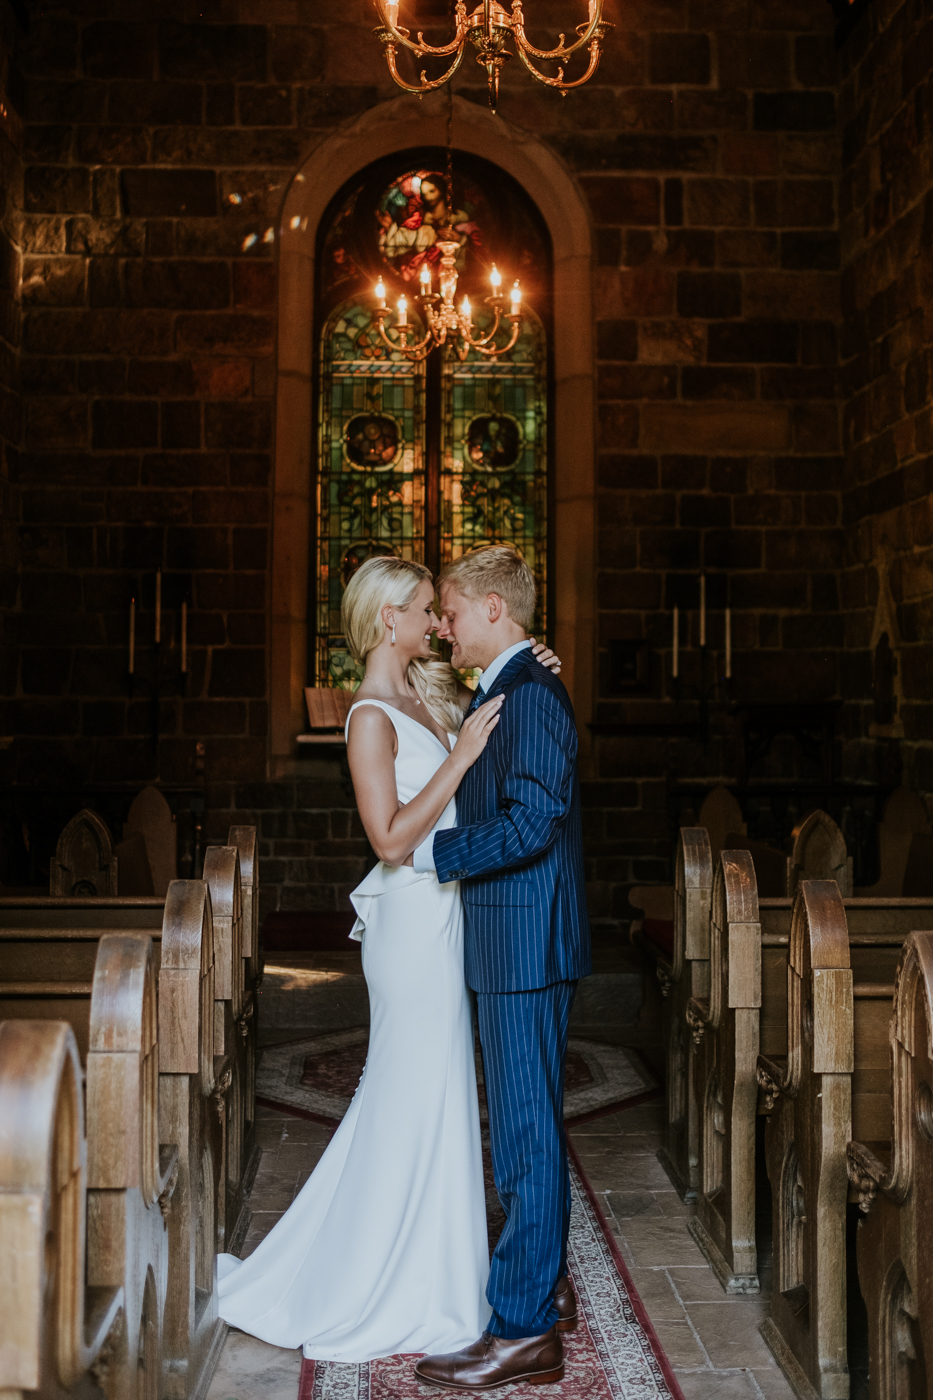 Sierra+Jacob.Wedding.Blog©mileswittboyer.com2018-103.jpg